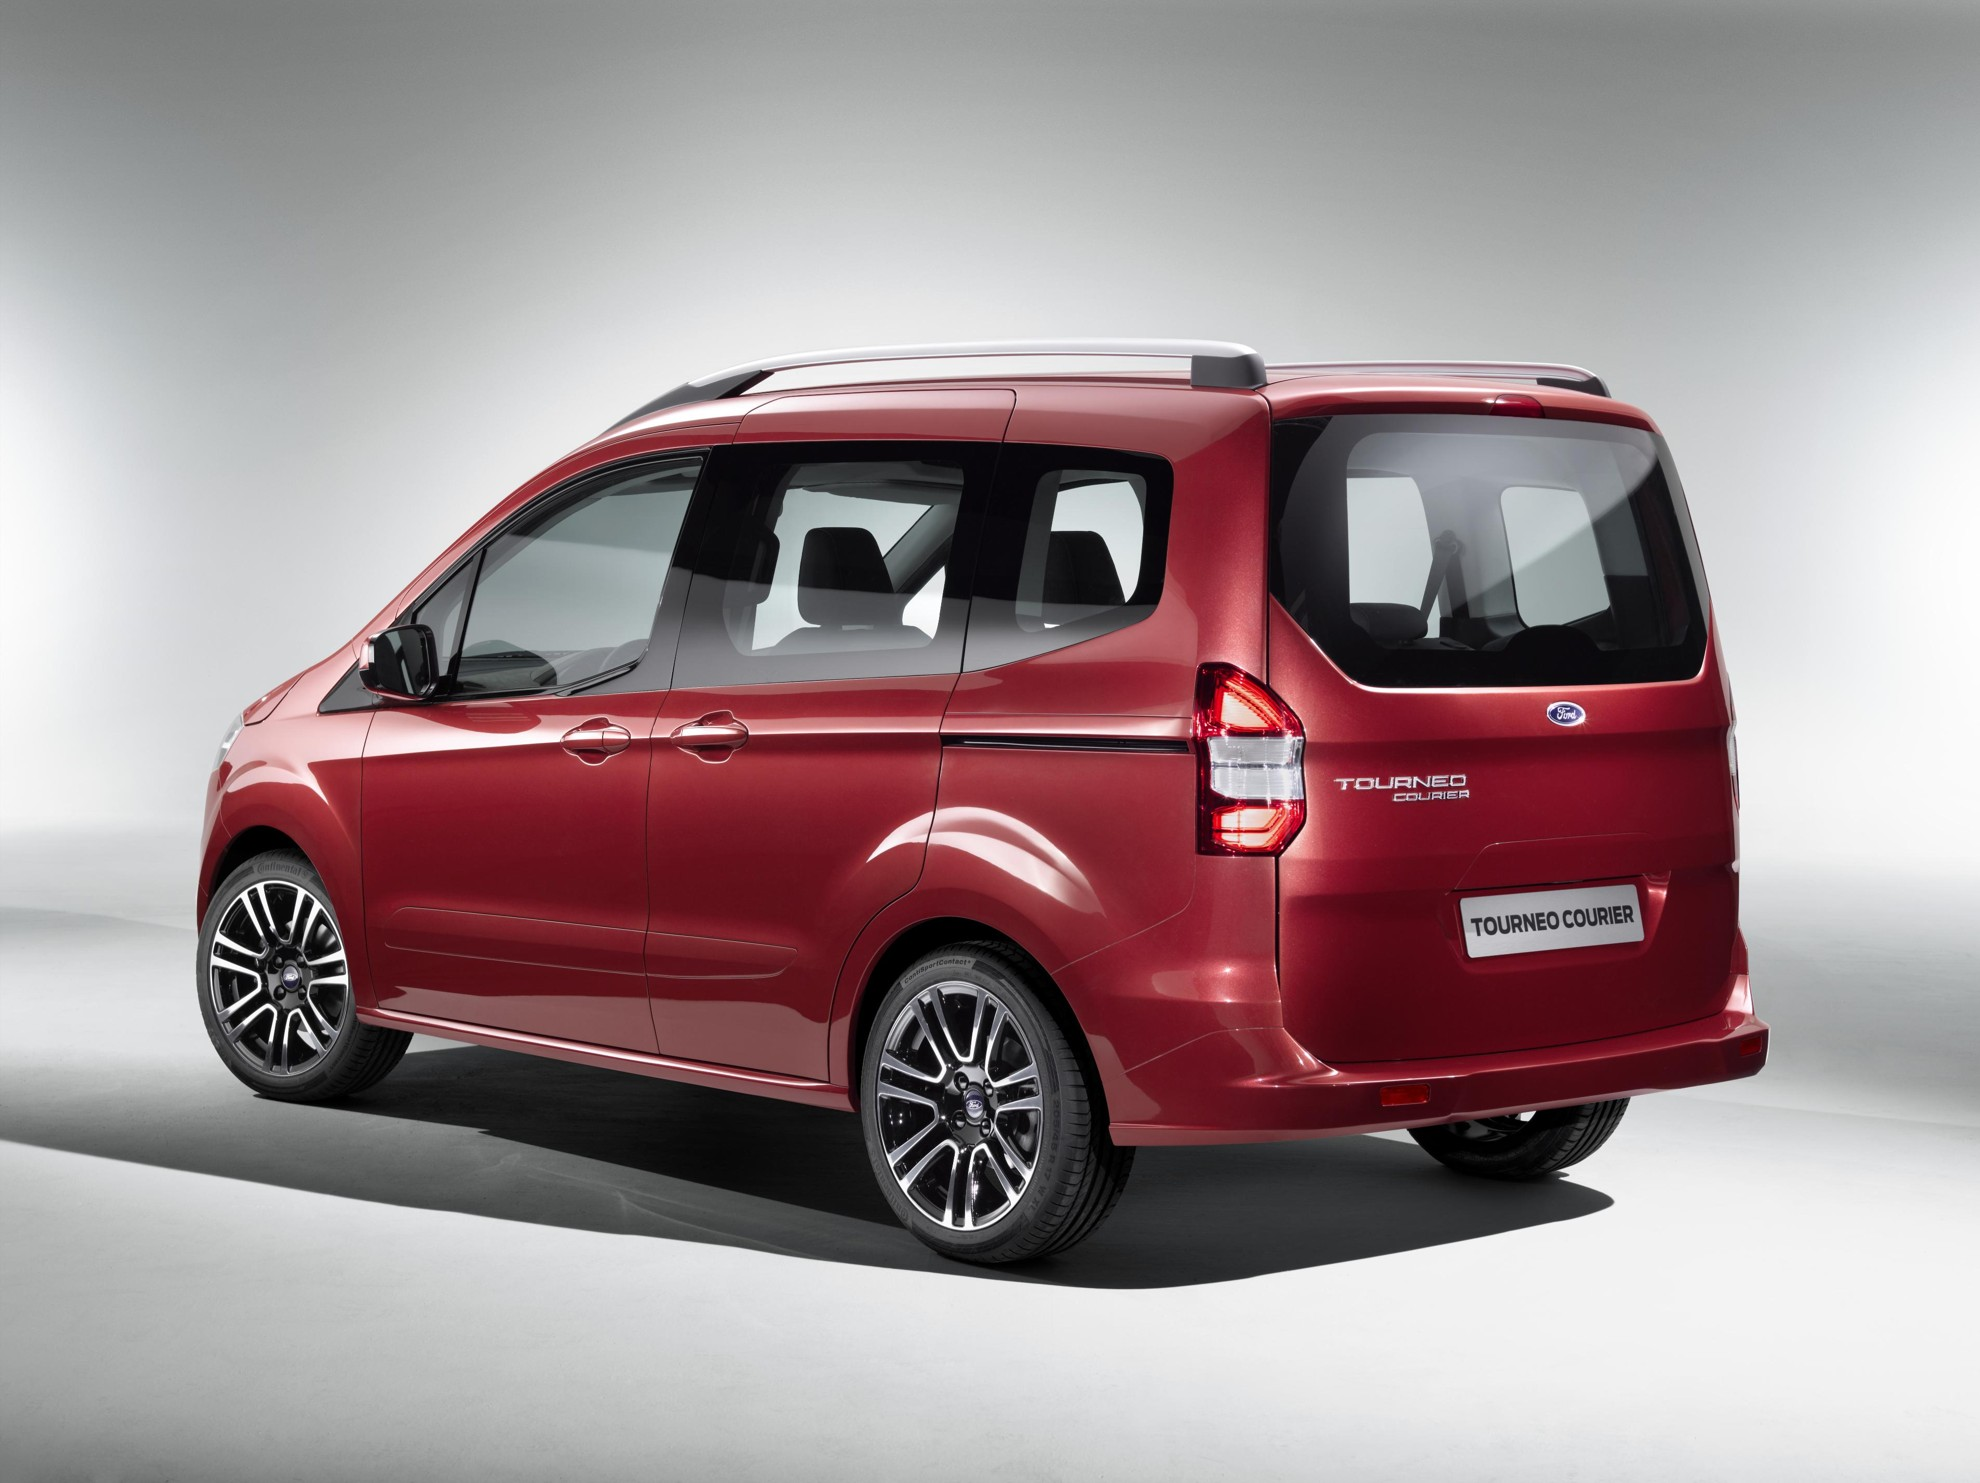 Ford Tourneo Courier 2013